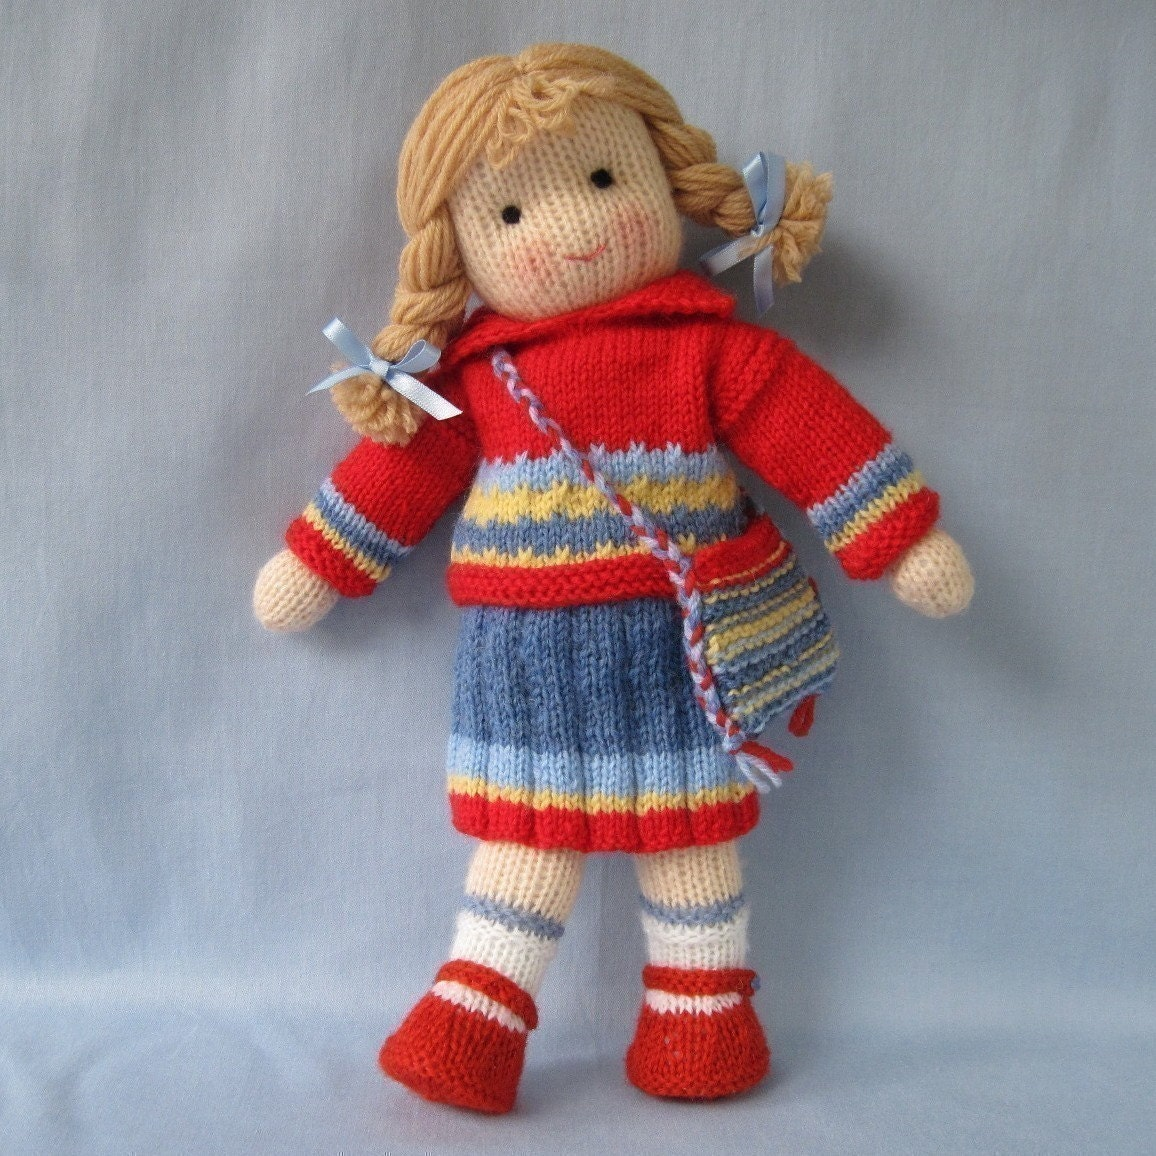 Knitting Doll How To Use : Tilly doll knitting pattern instant download from